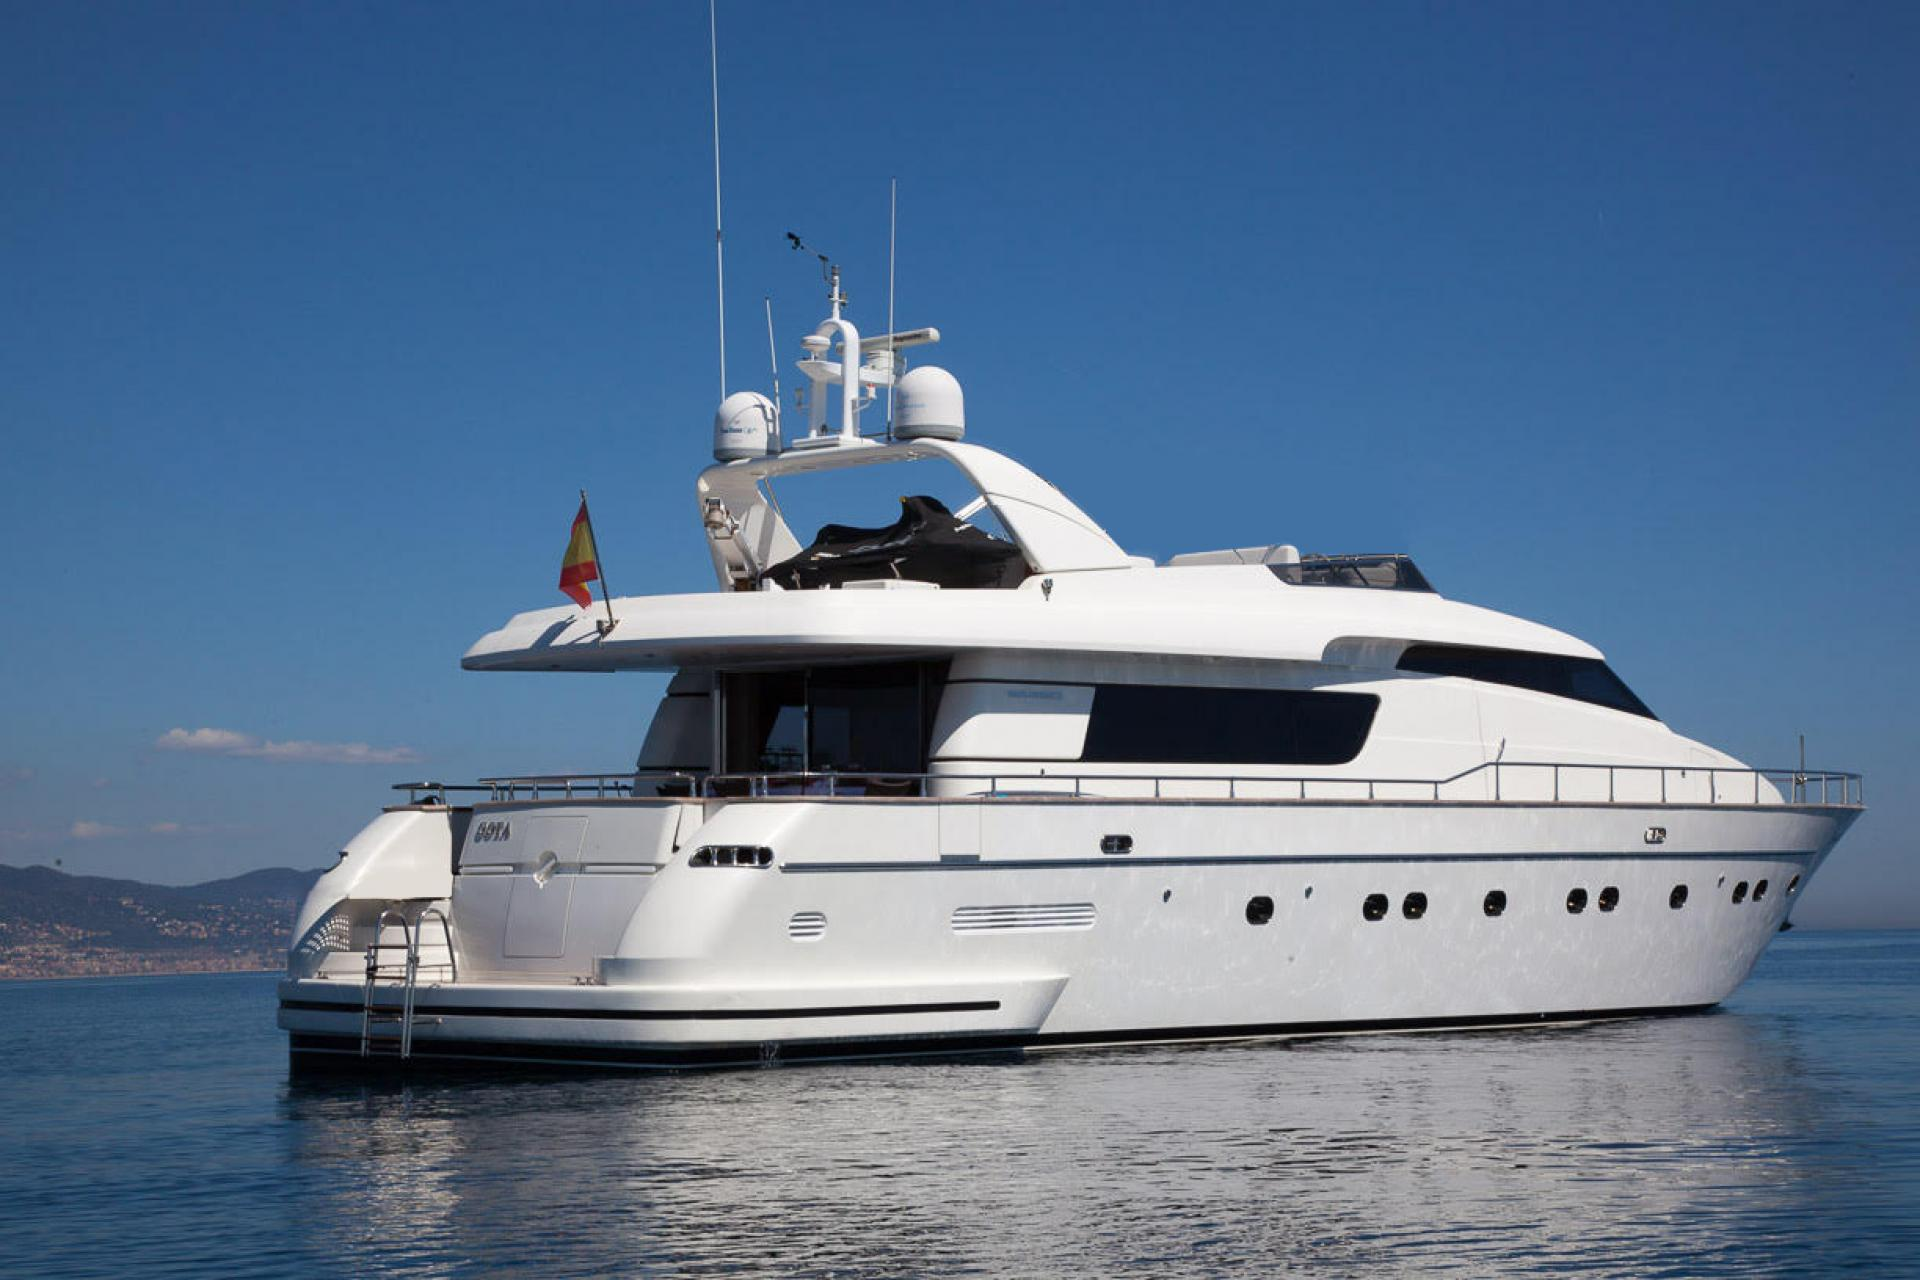 Luxury Yachts For Sale In IbizaBoat Sales In Ibiza